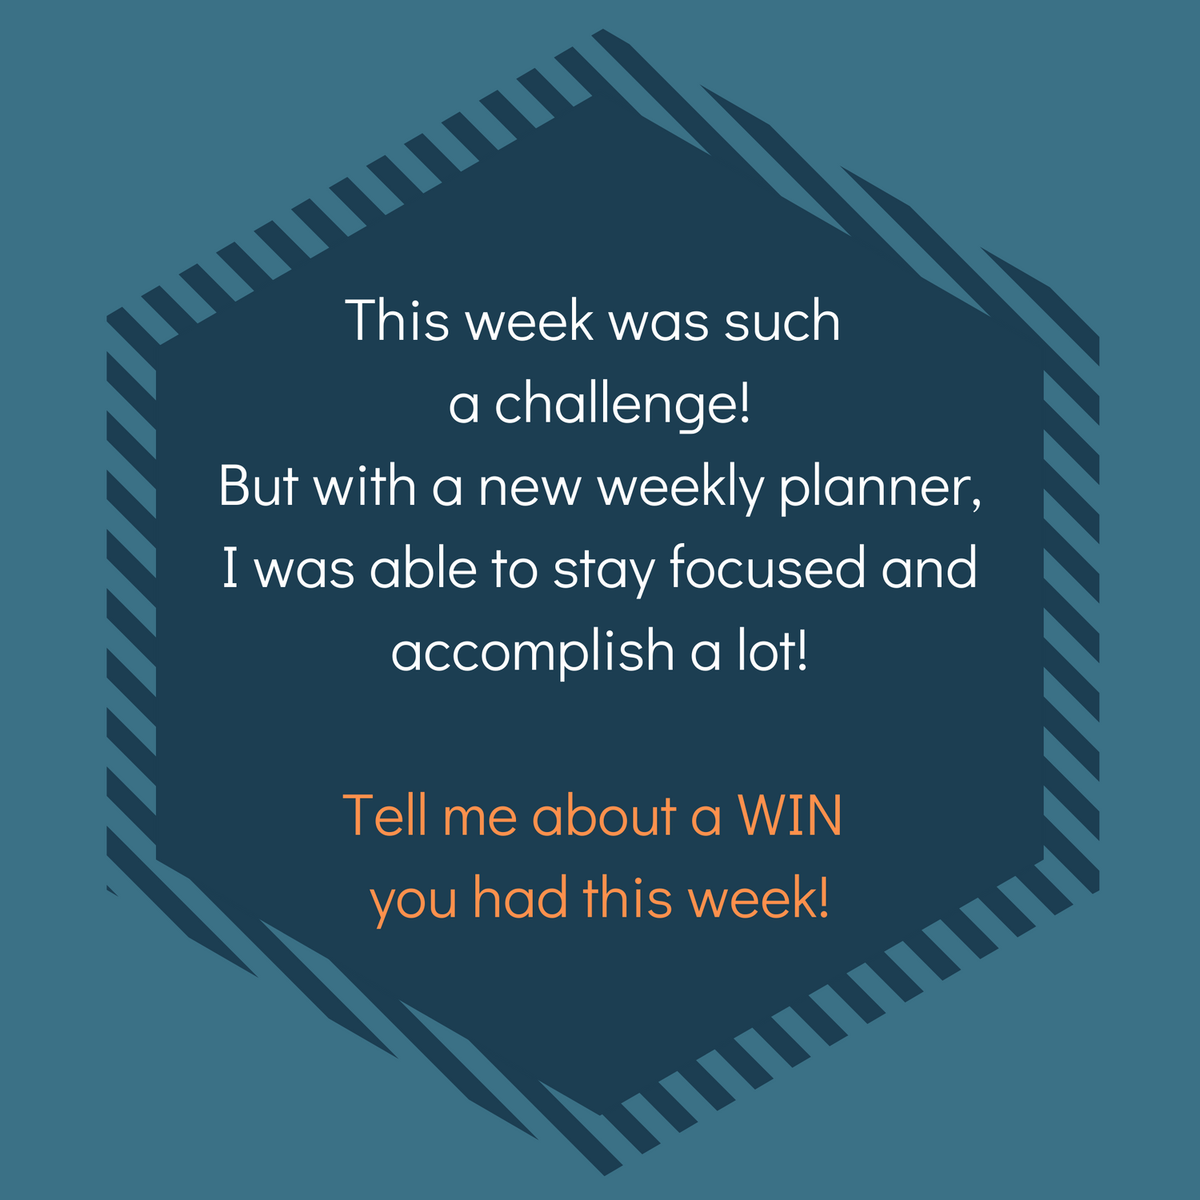 Have a WIN or a moment of gratitude this week? Please share!!  Mine was using a weekly planner to stay focused and on task.  #productivity #feelingacomplished #gratitude #feelingorganized #organized #weeklyplanner #planner #voiceover #voicetalent #solopreneur #solopreneurlife https://t.co/Q8ZrOmalaC